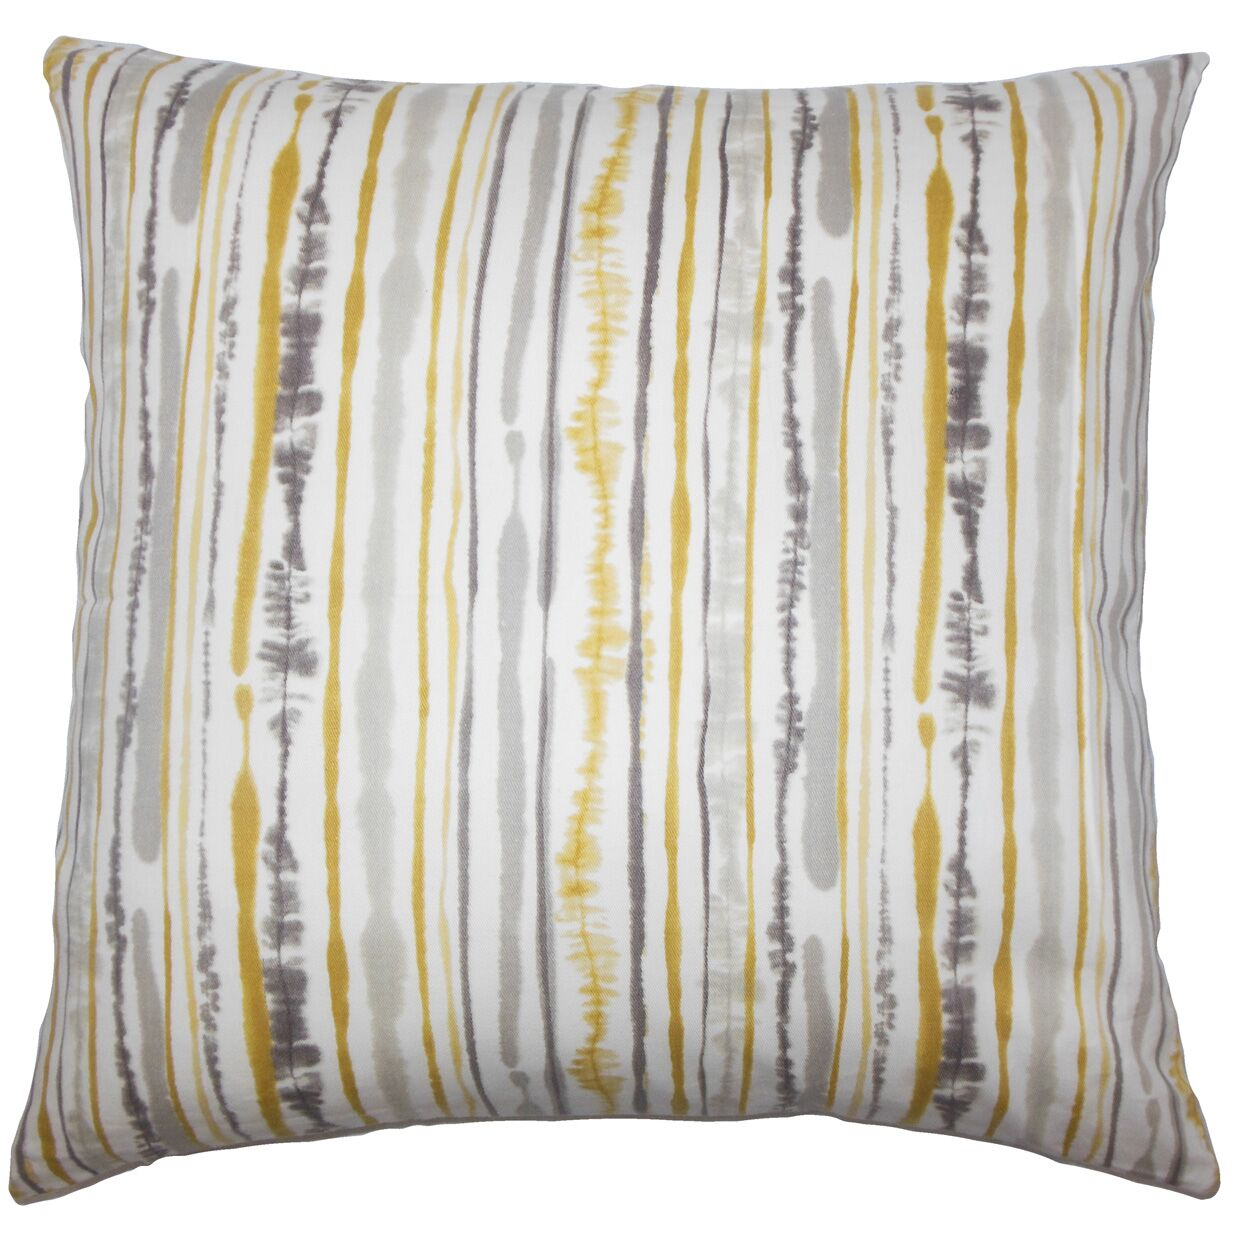 Kidwell Striped Bedding Sham Size: Standard, Color: Yellow